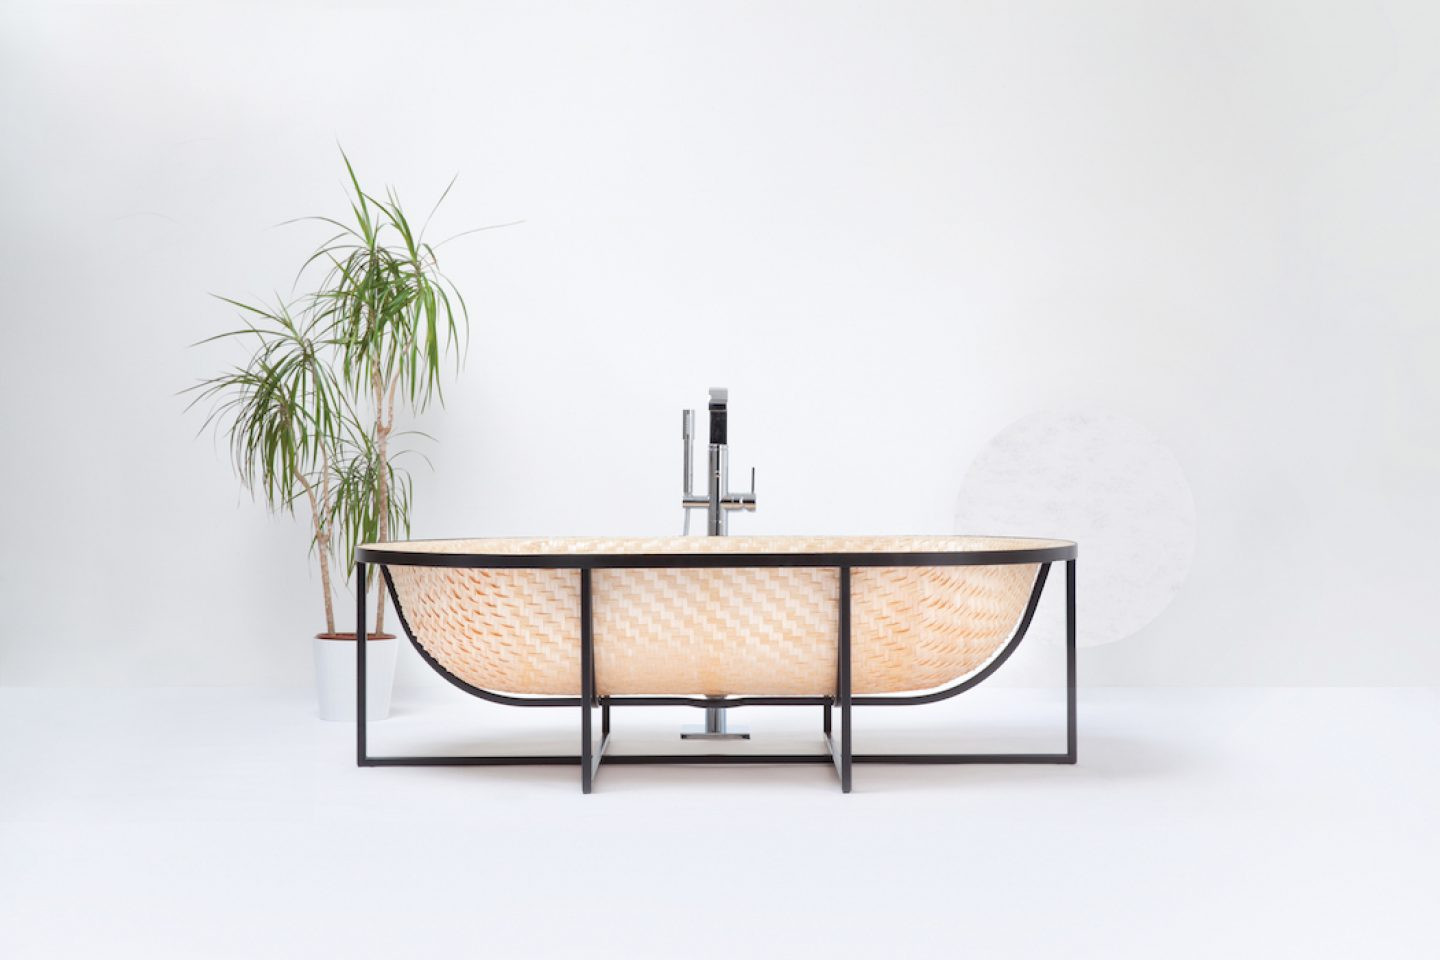 tal-engel-bathtub_design_001